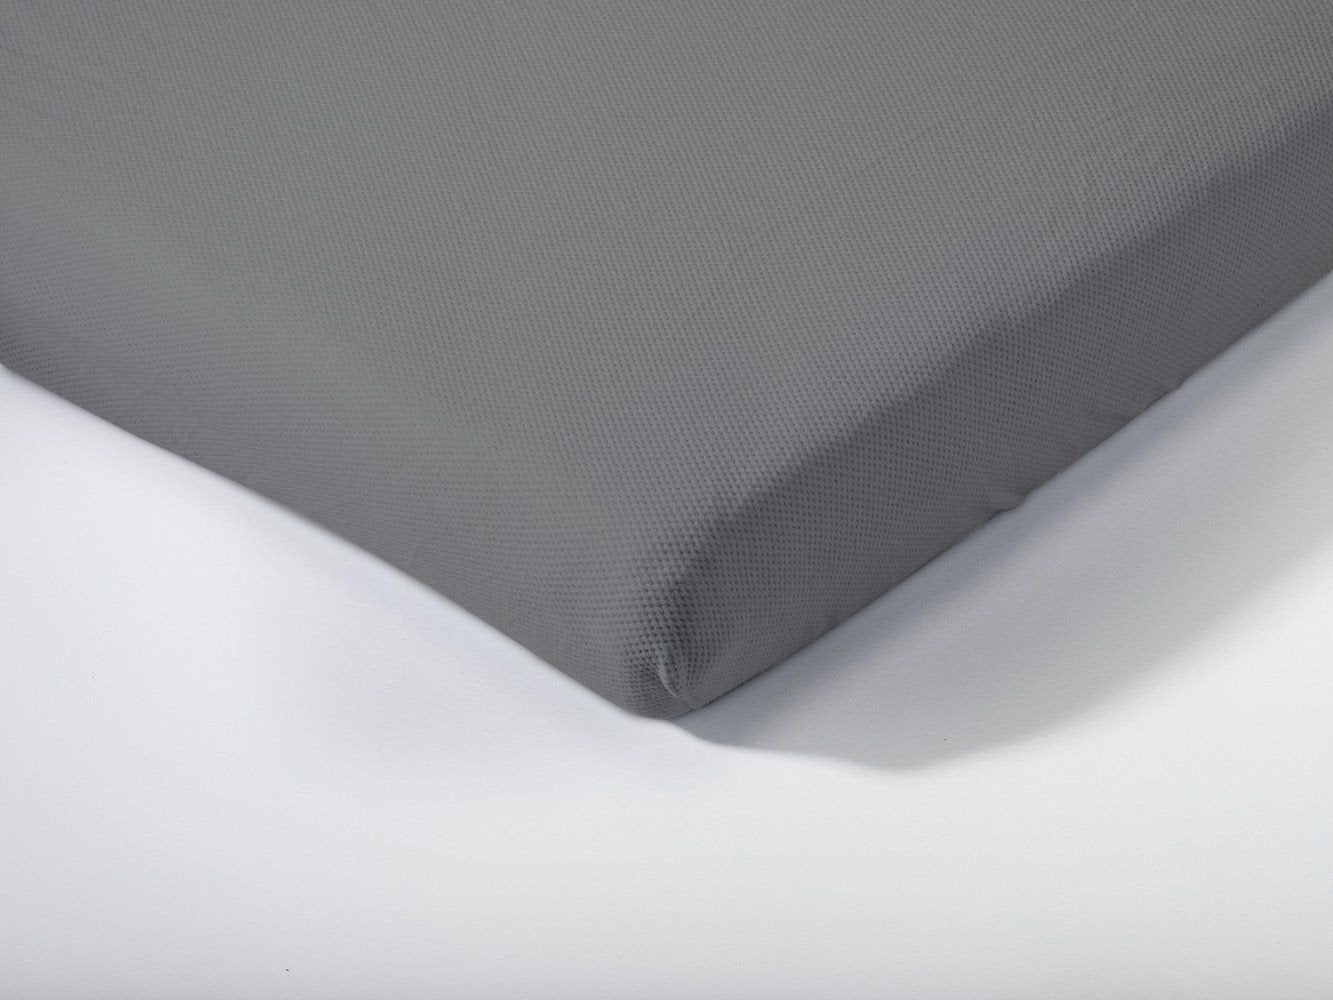 Aerosleep Sleep Safe Fitted Sheet in Dark Grey